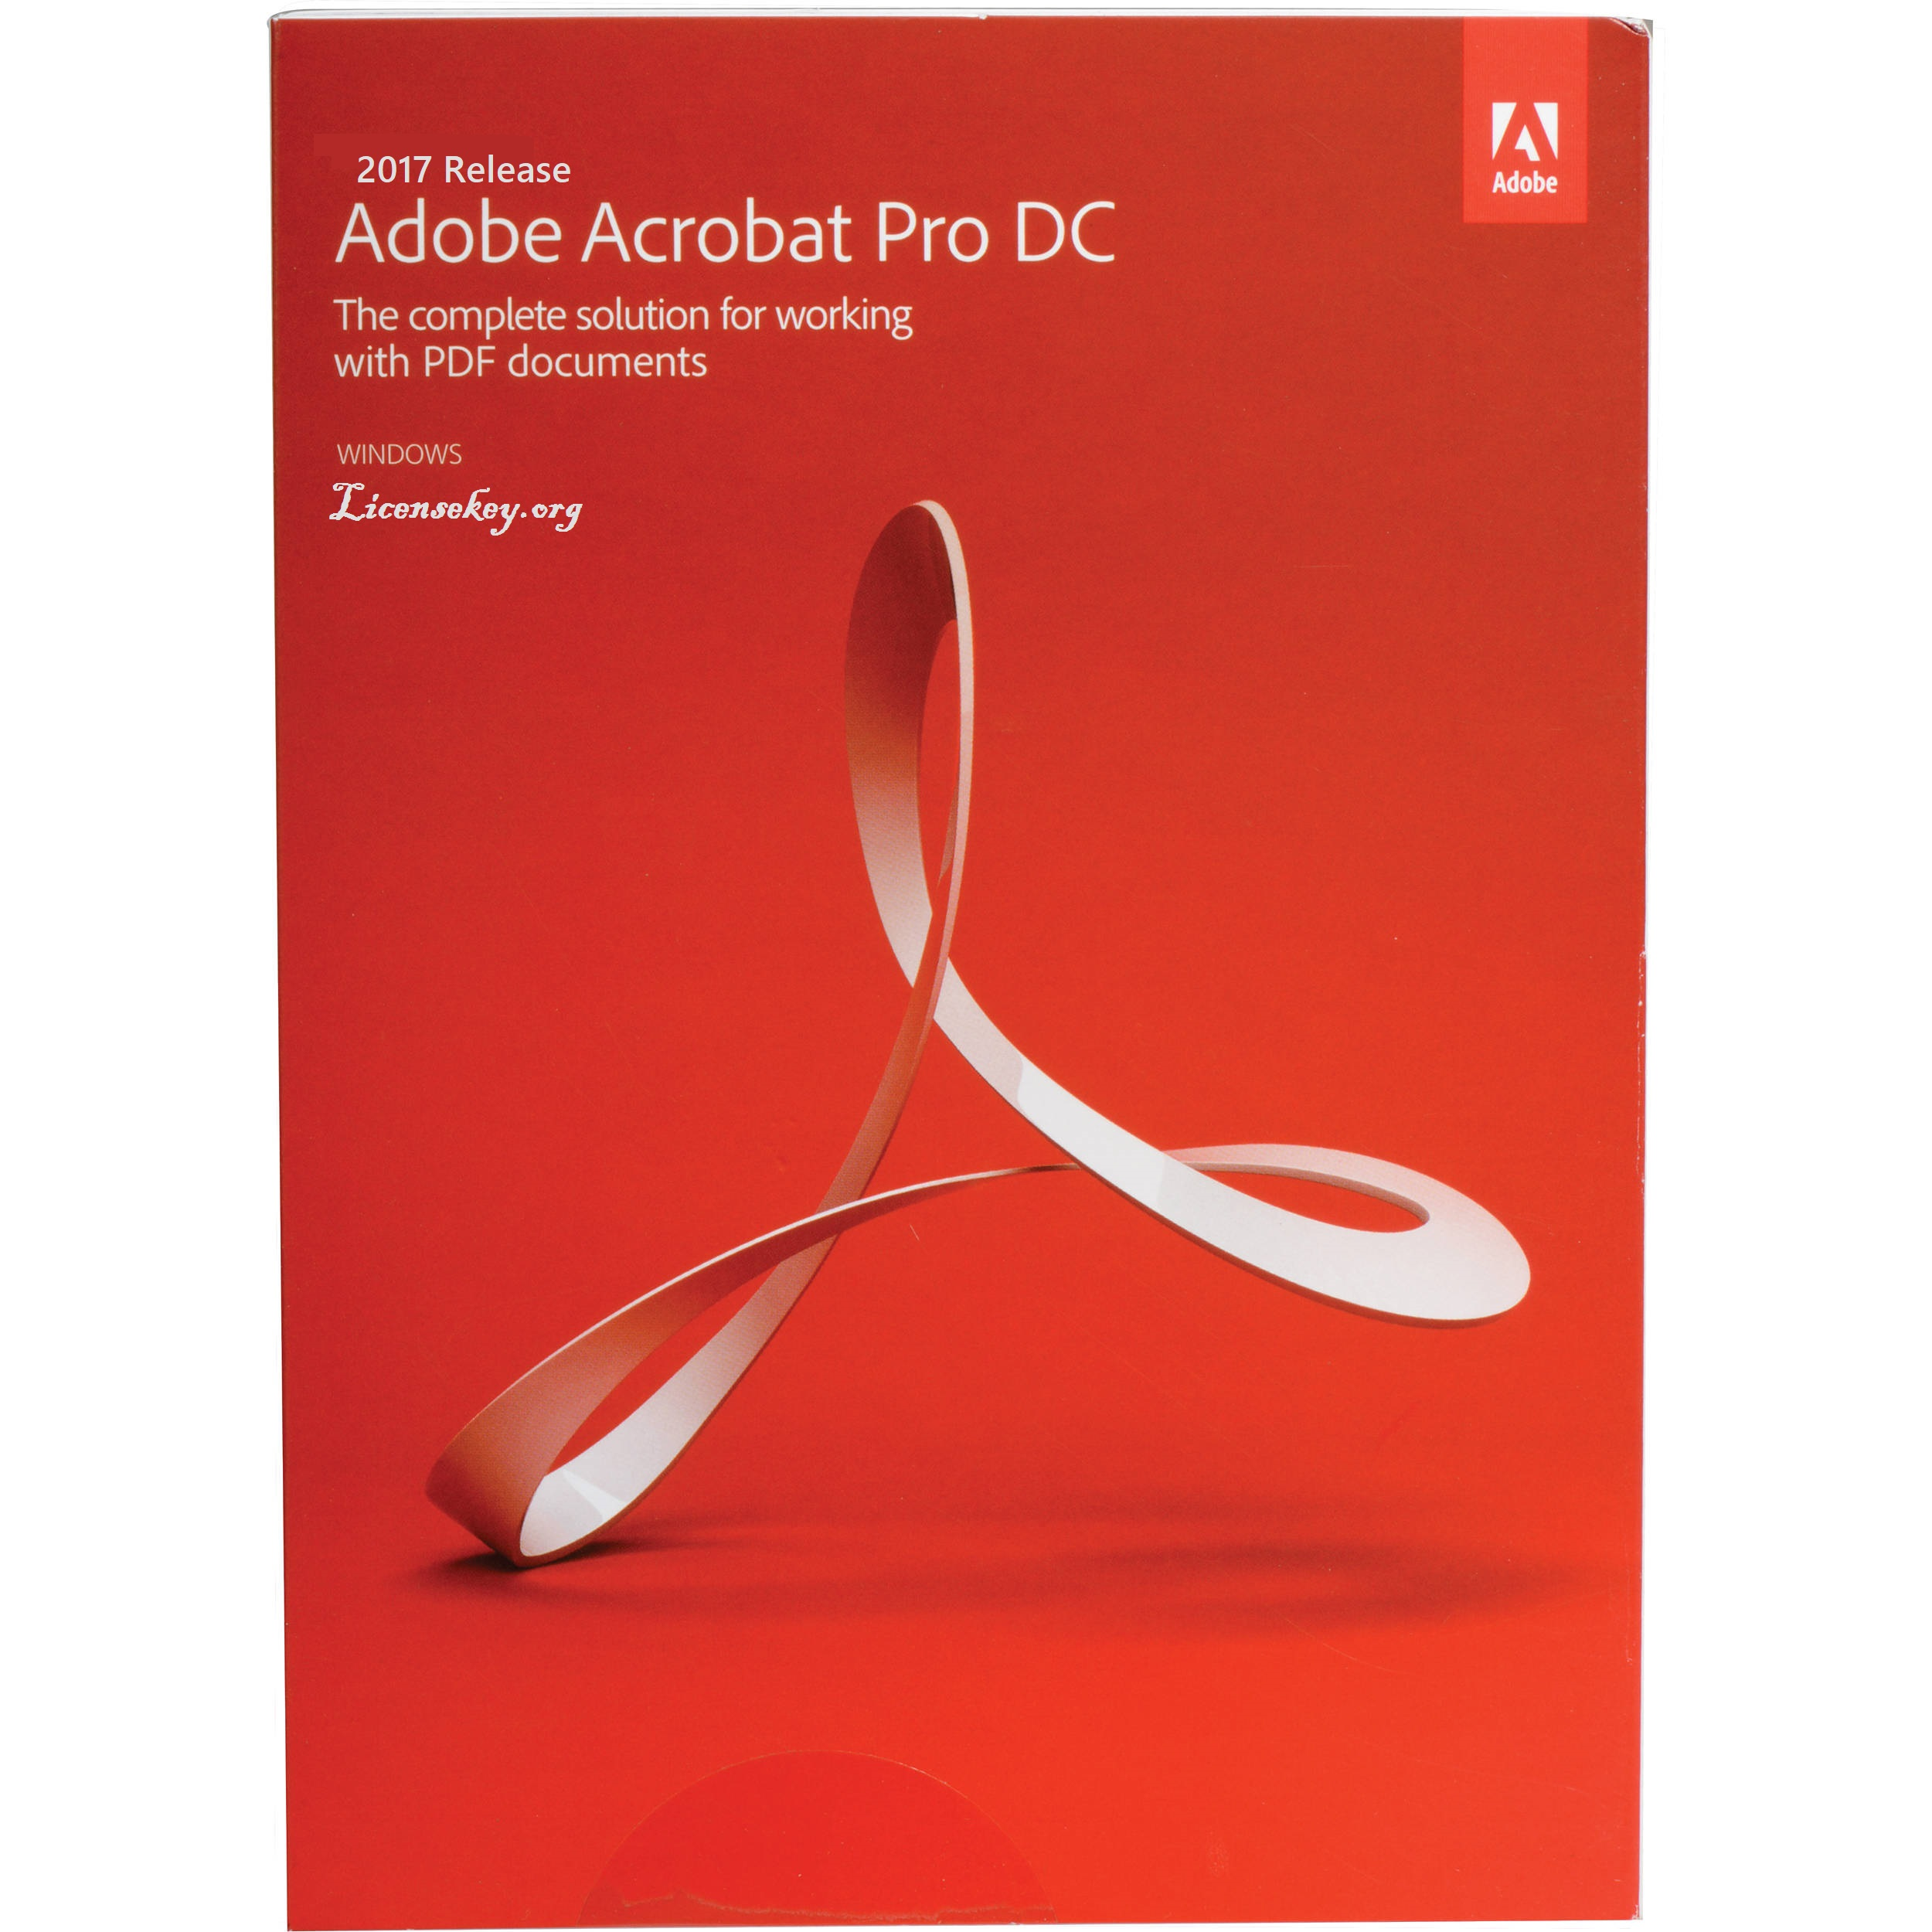 Adobe Acrobat Pro DC License Key 2017 Updated Version Full